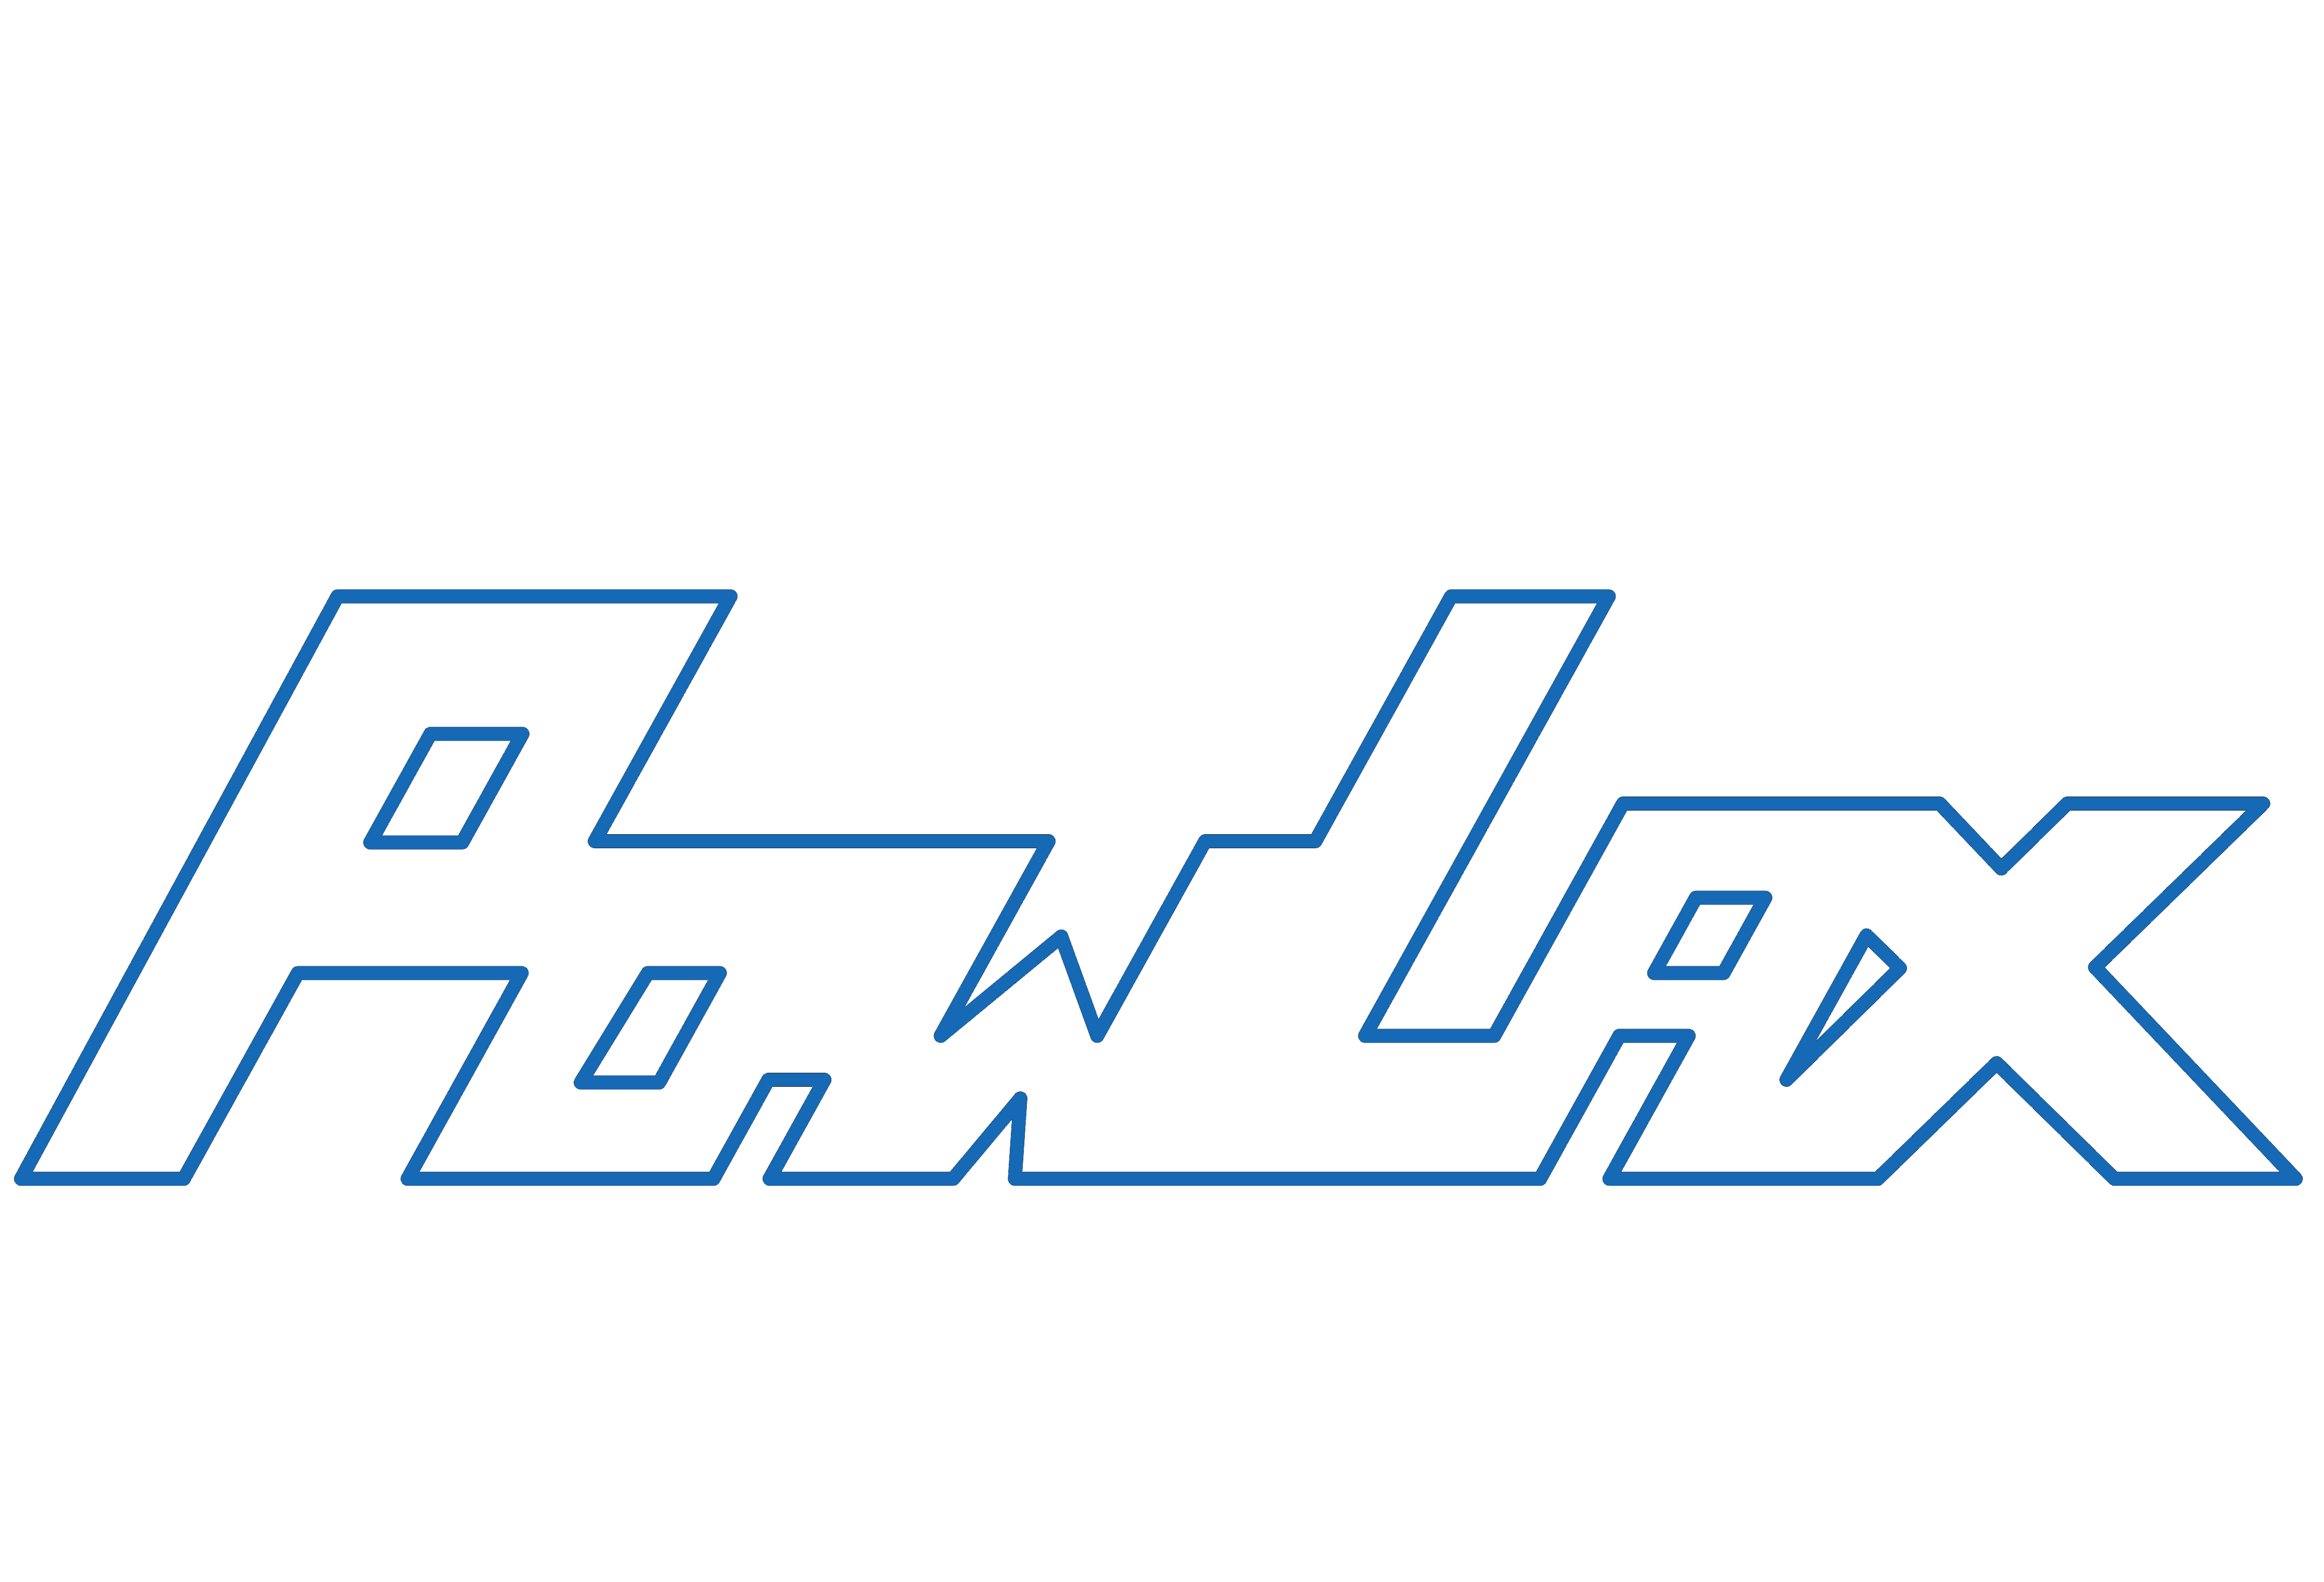 PowLax Text Logo - White and Blue